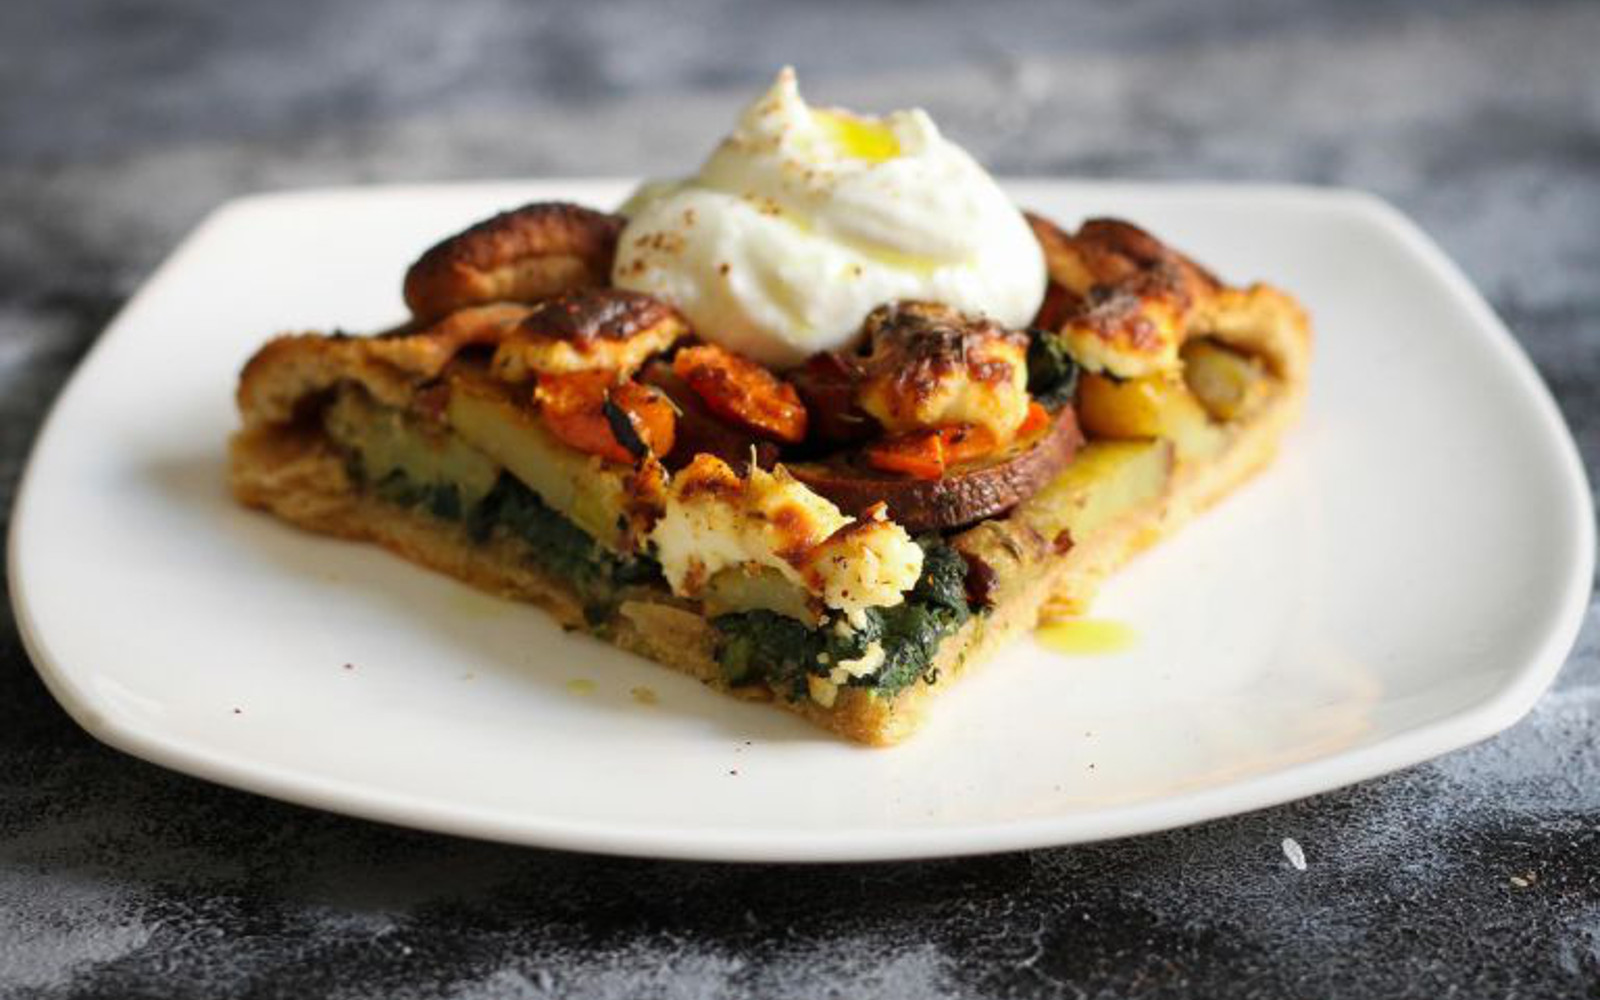 Vegan Sweet Potato Carrot Galette with topping